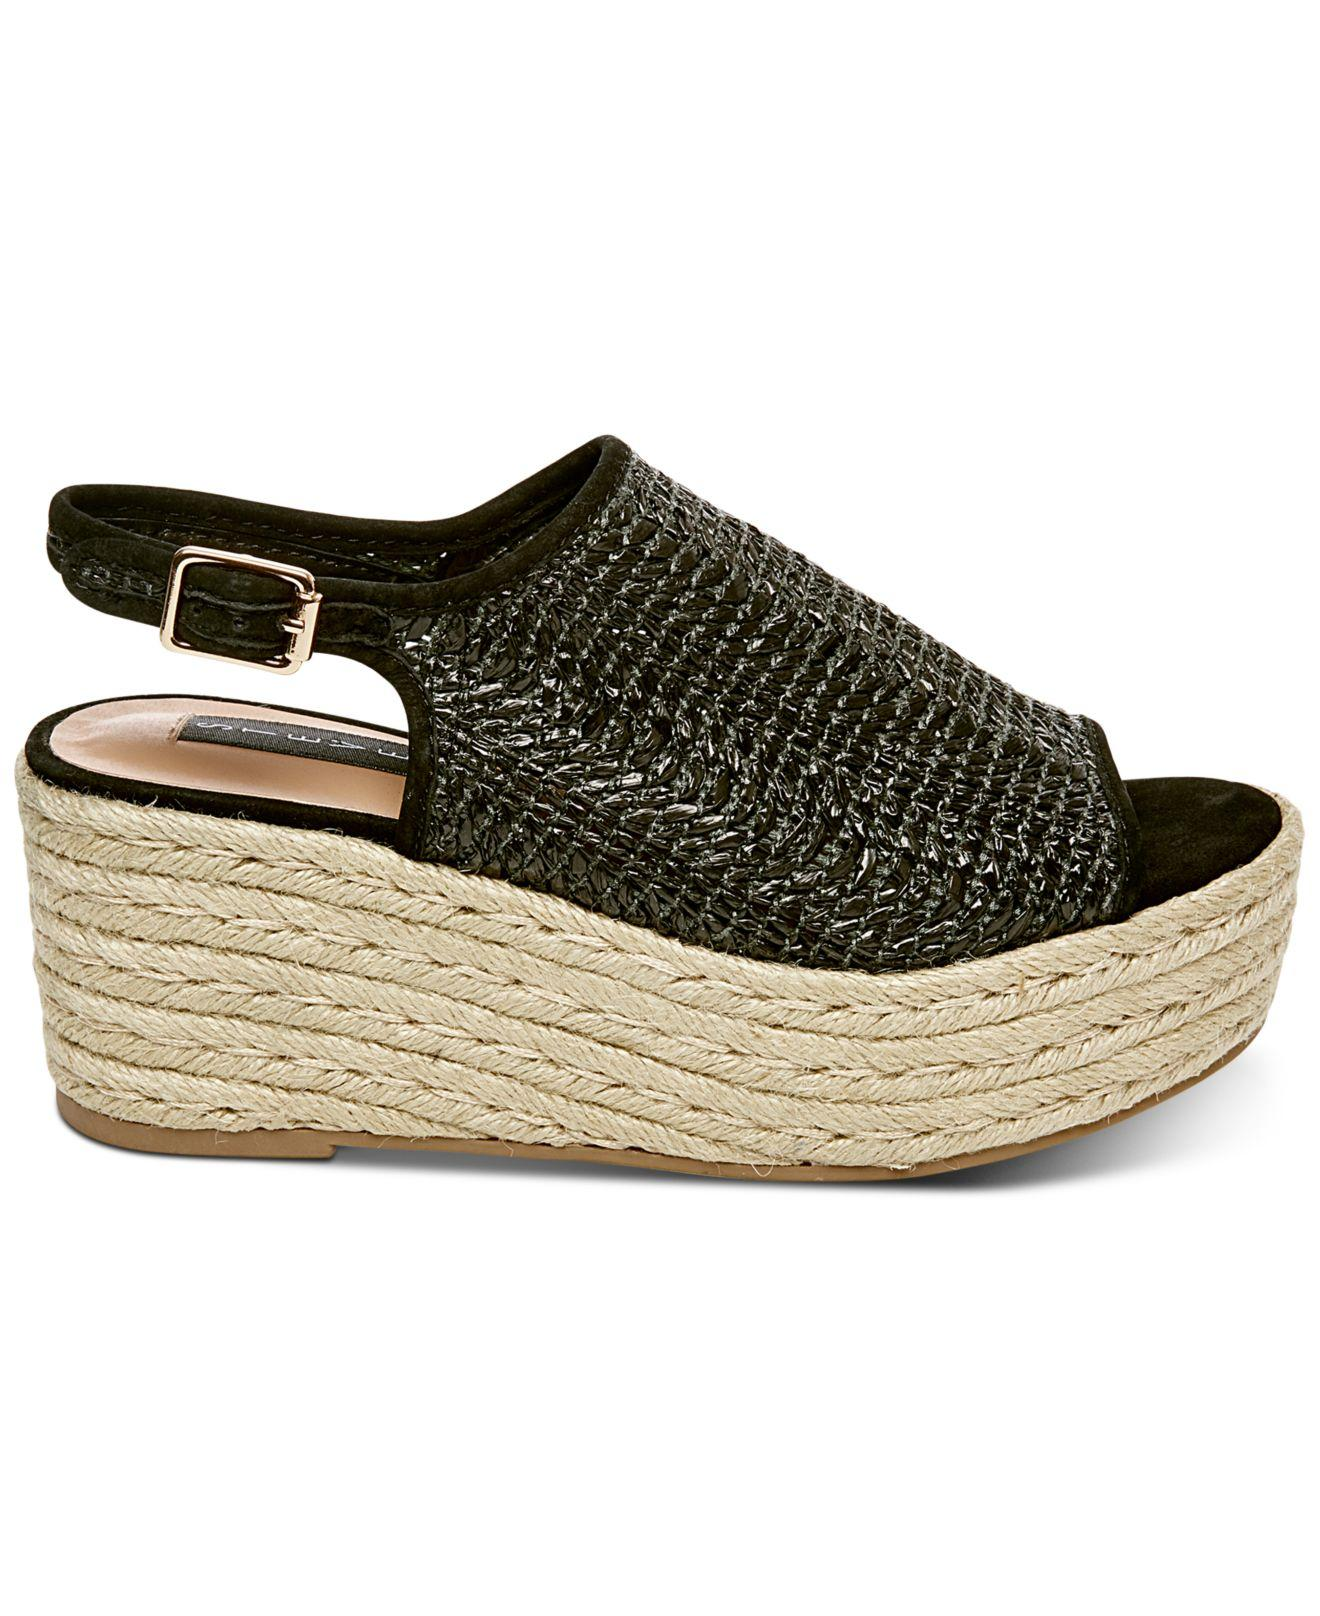 7dccc898f36 Lyst - Steven by Steve Madden Courage Espadrille Wedge Sandals in Black -  Save 35%